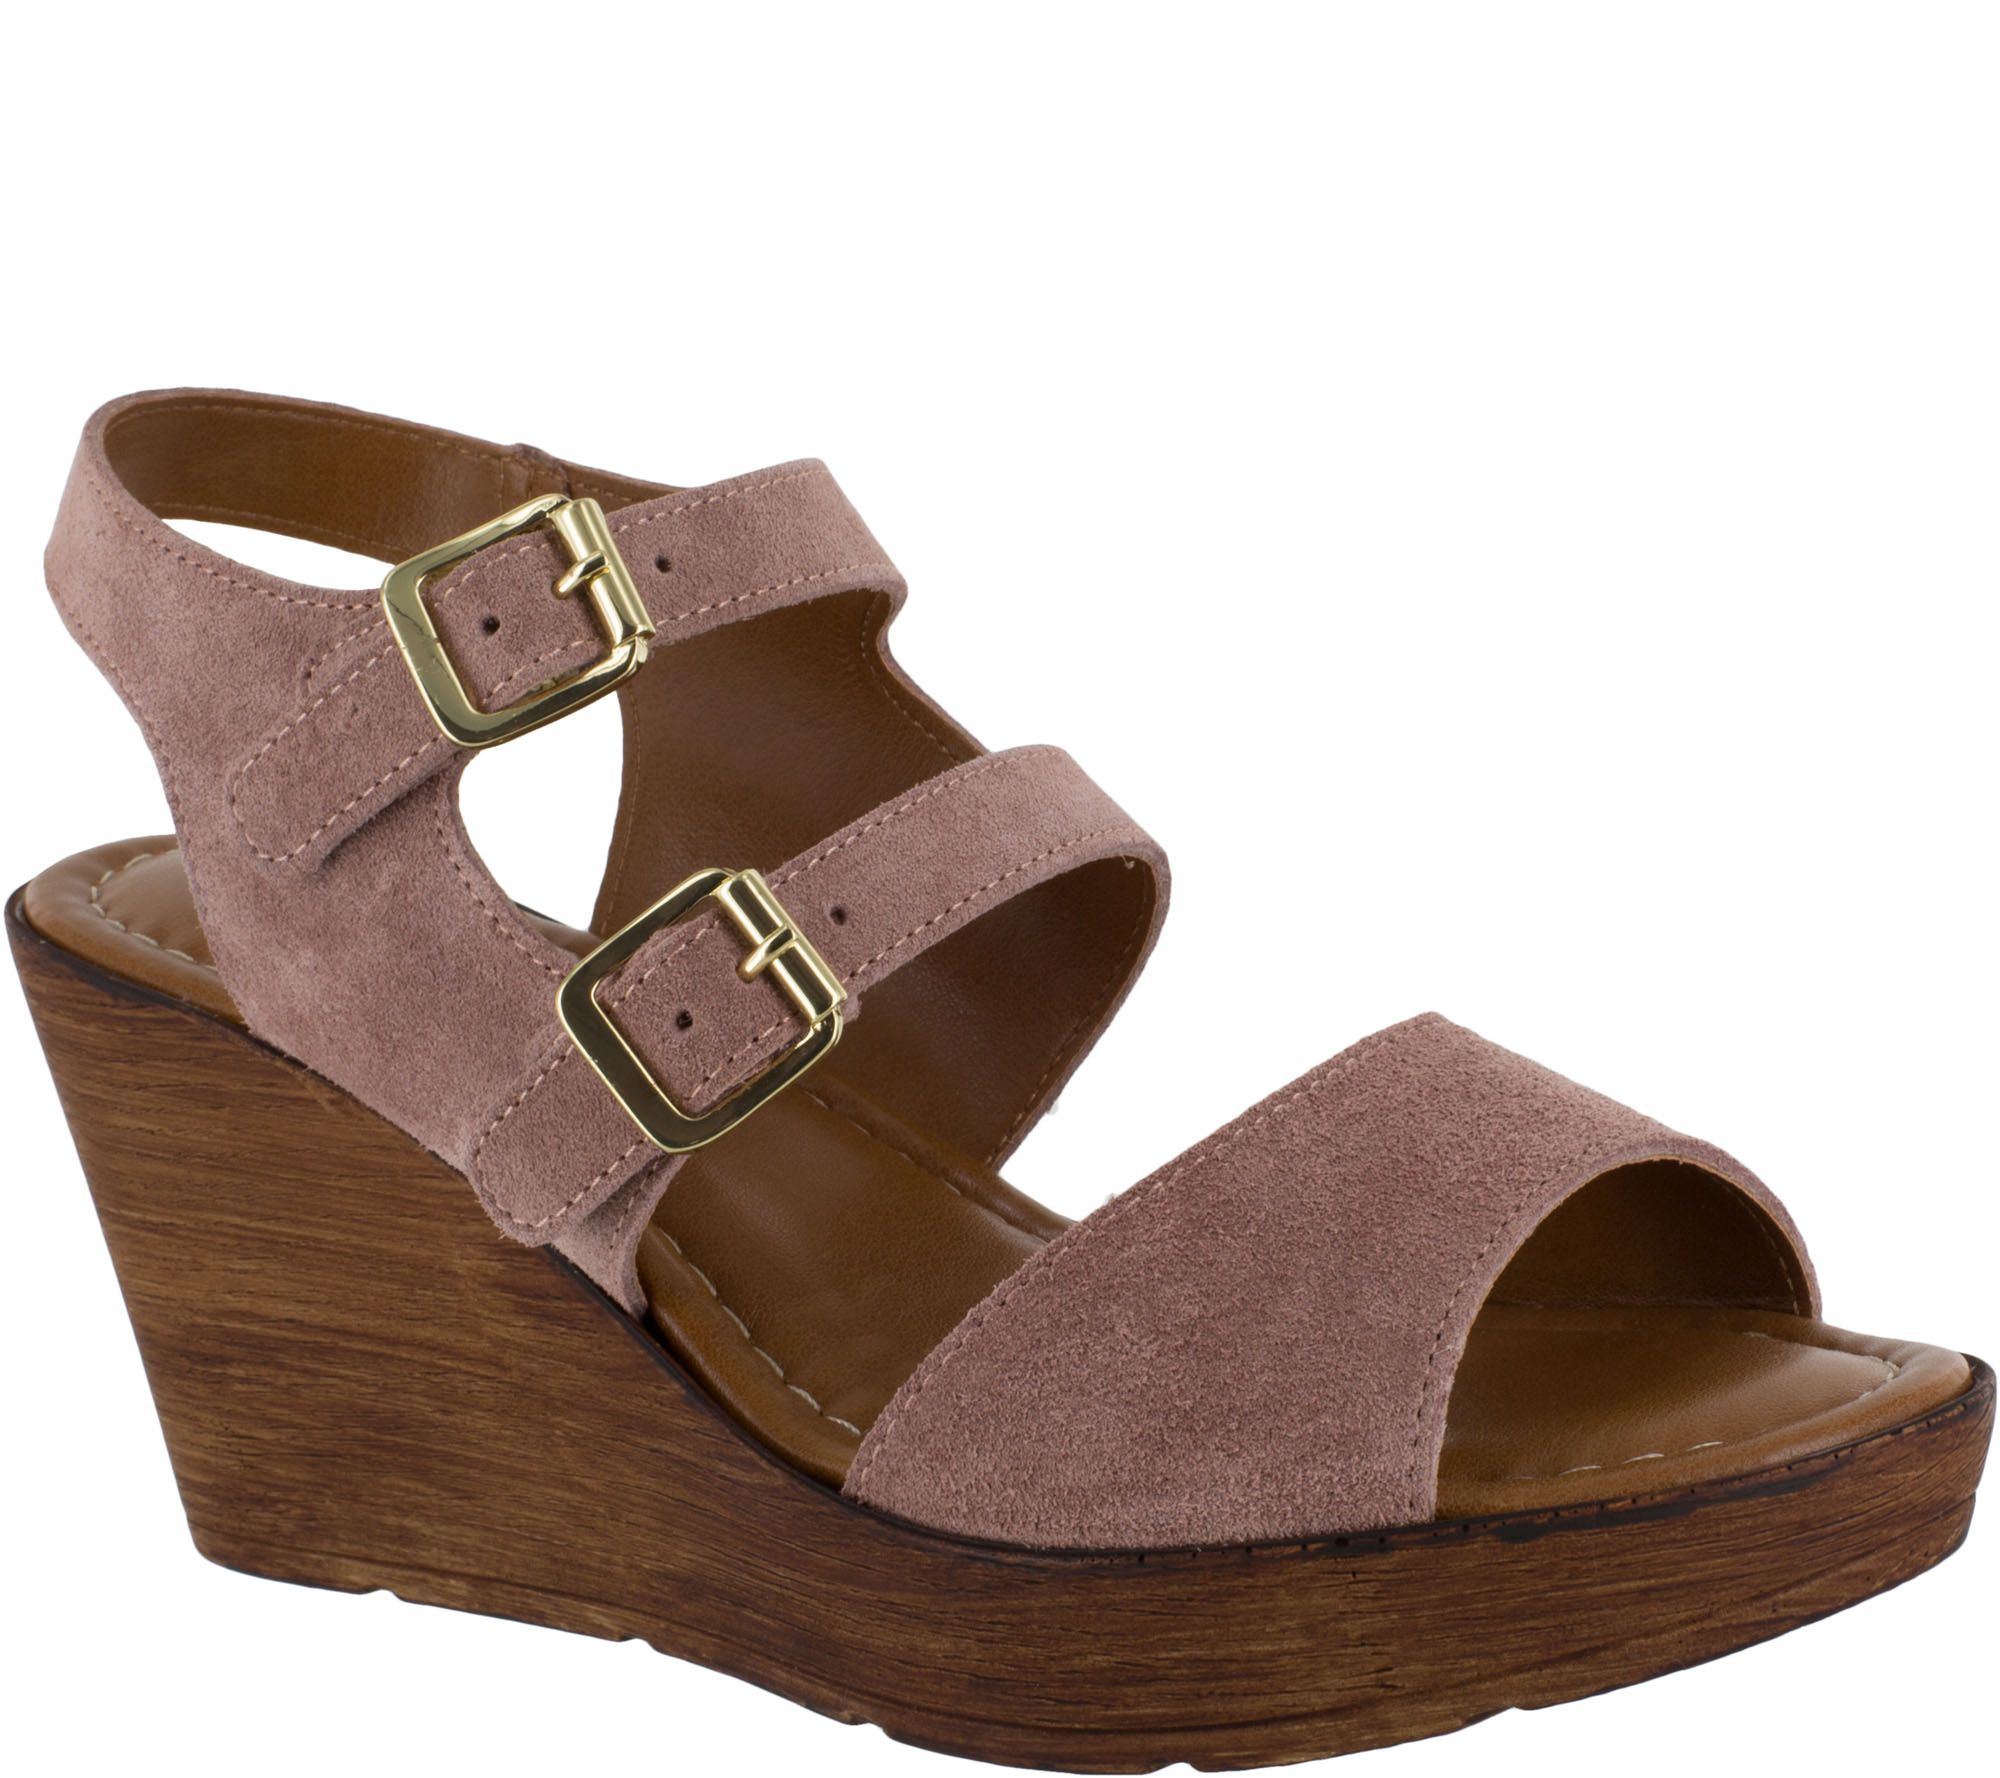 Wedge Vita Bella Ani Italy Leather Sandals P0ON8nwkX